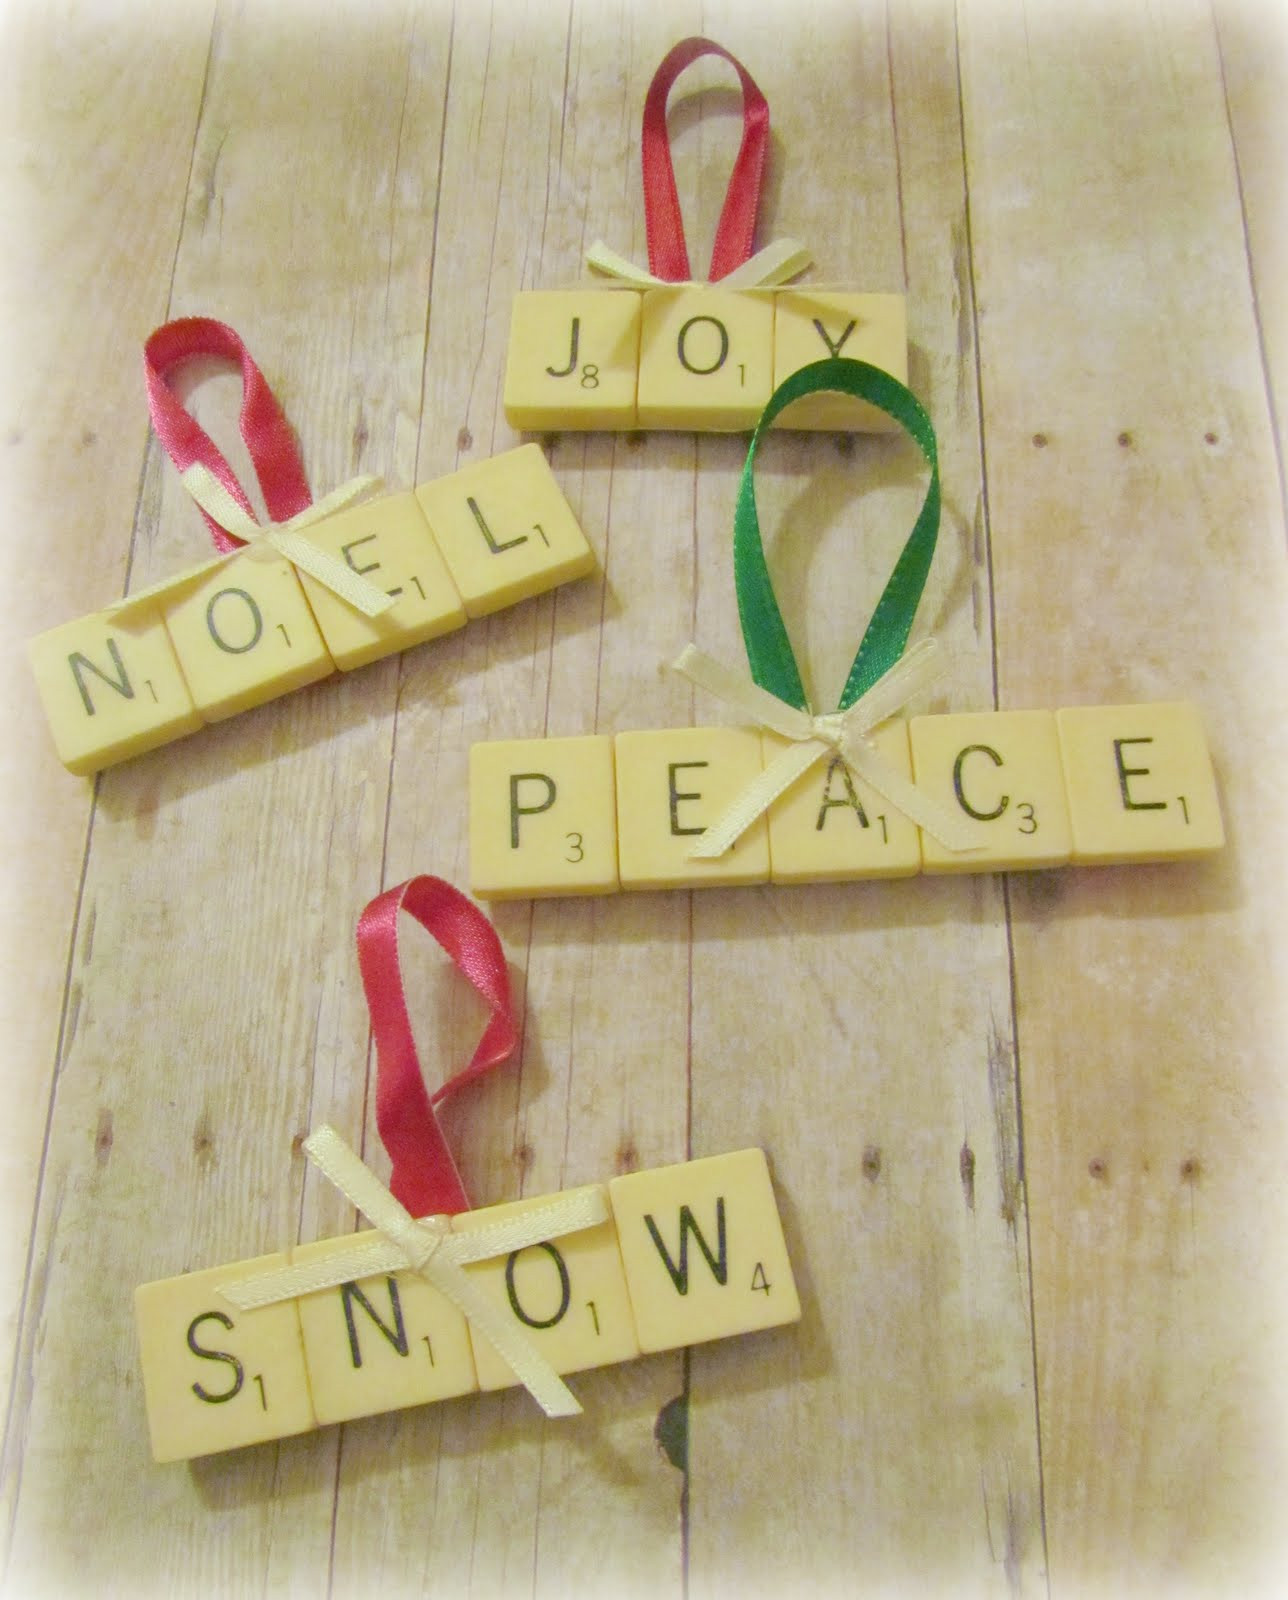 Scrabble Tile Christmas Ornaments  twobutterflies 30 Days For 30 Dollars Day 15 Scrabble